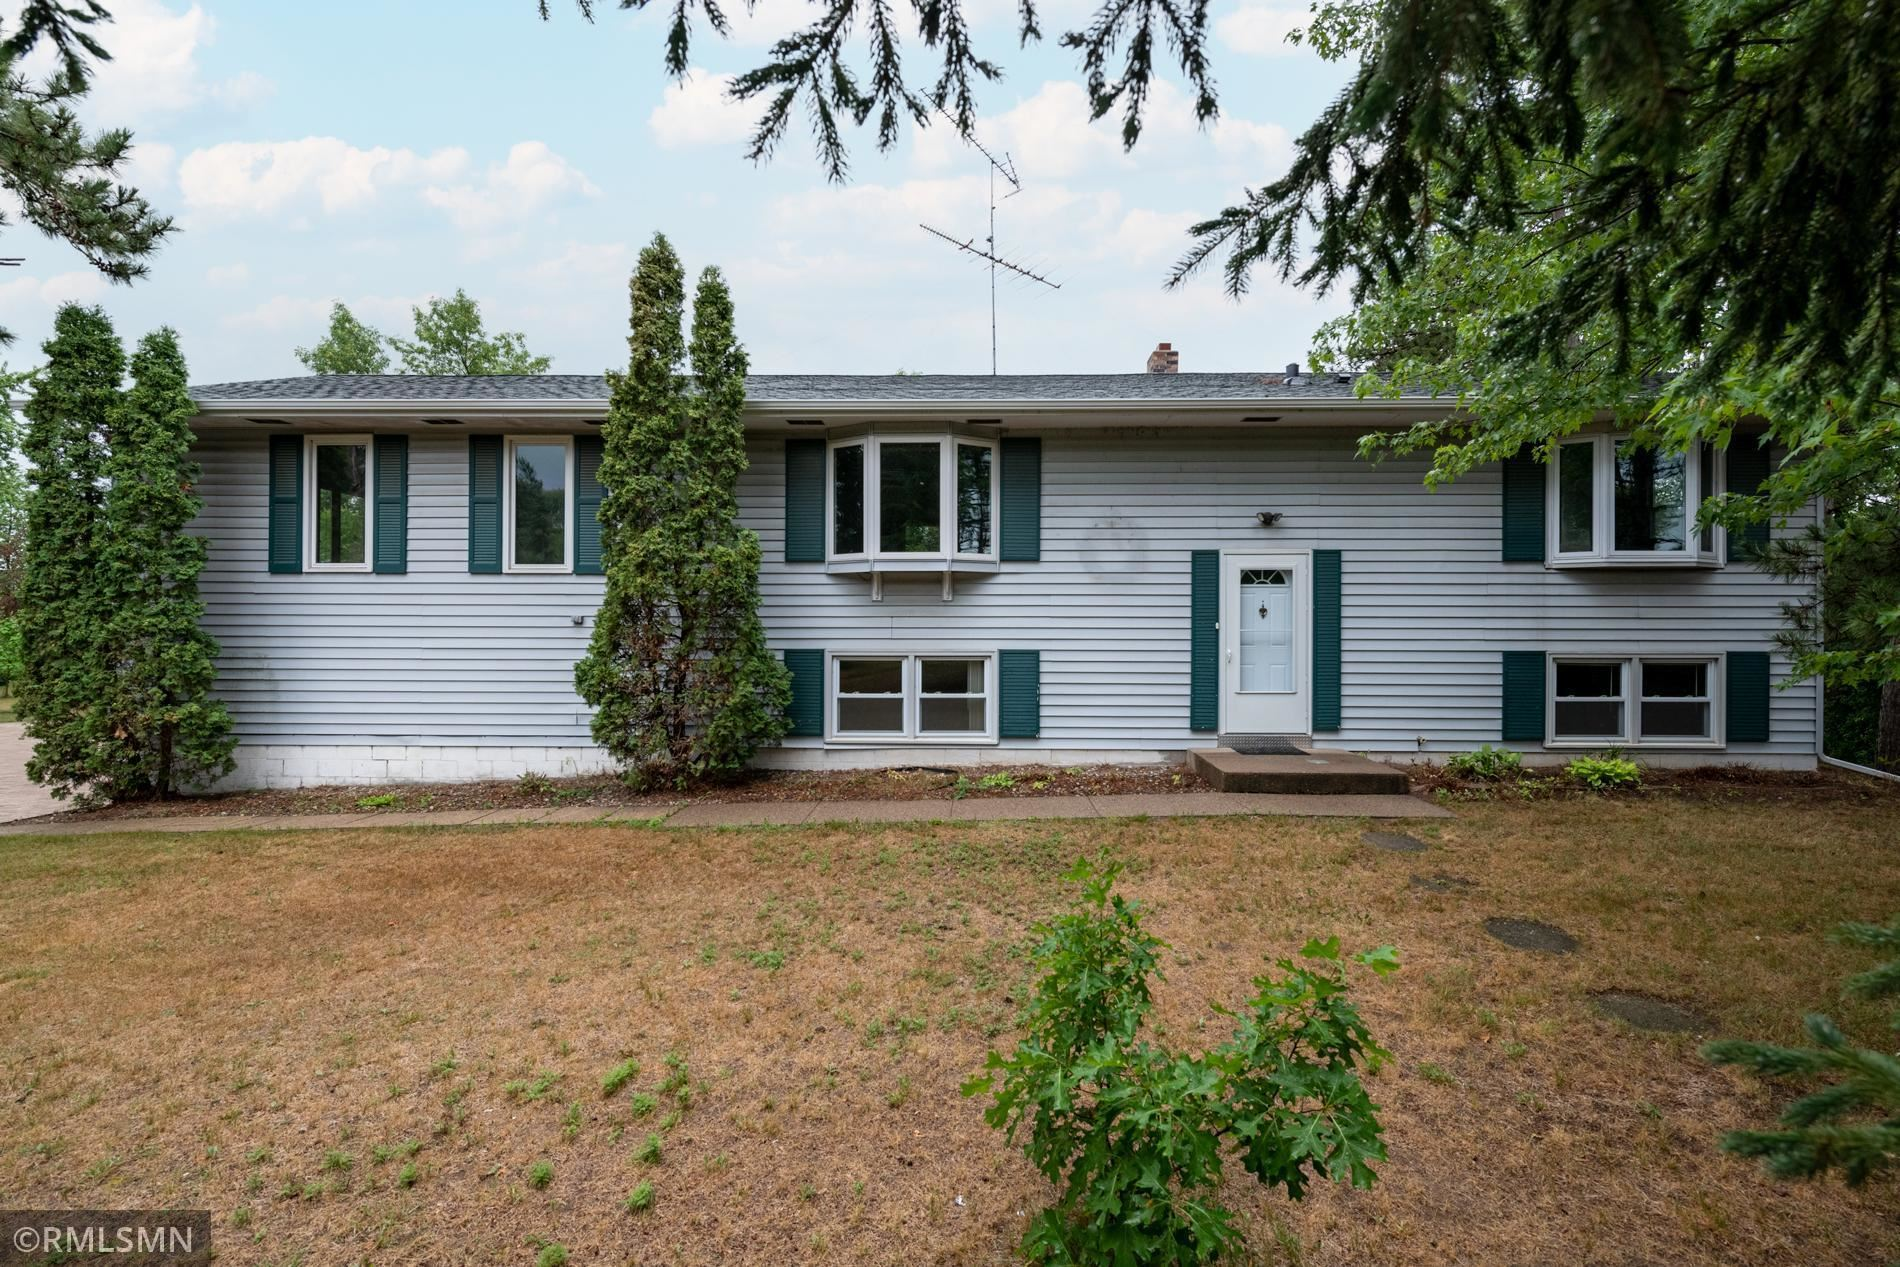 38463 County Road 1, Sartell, MN 56377 - #: 6020930